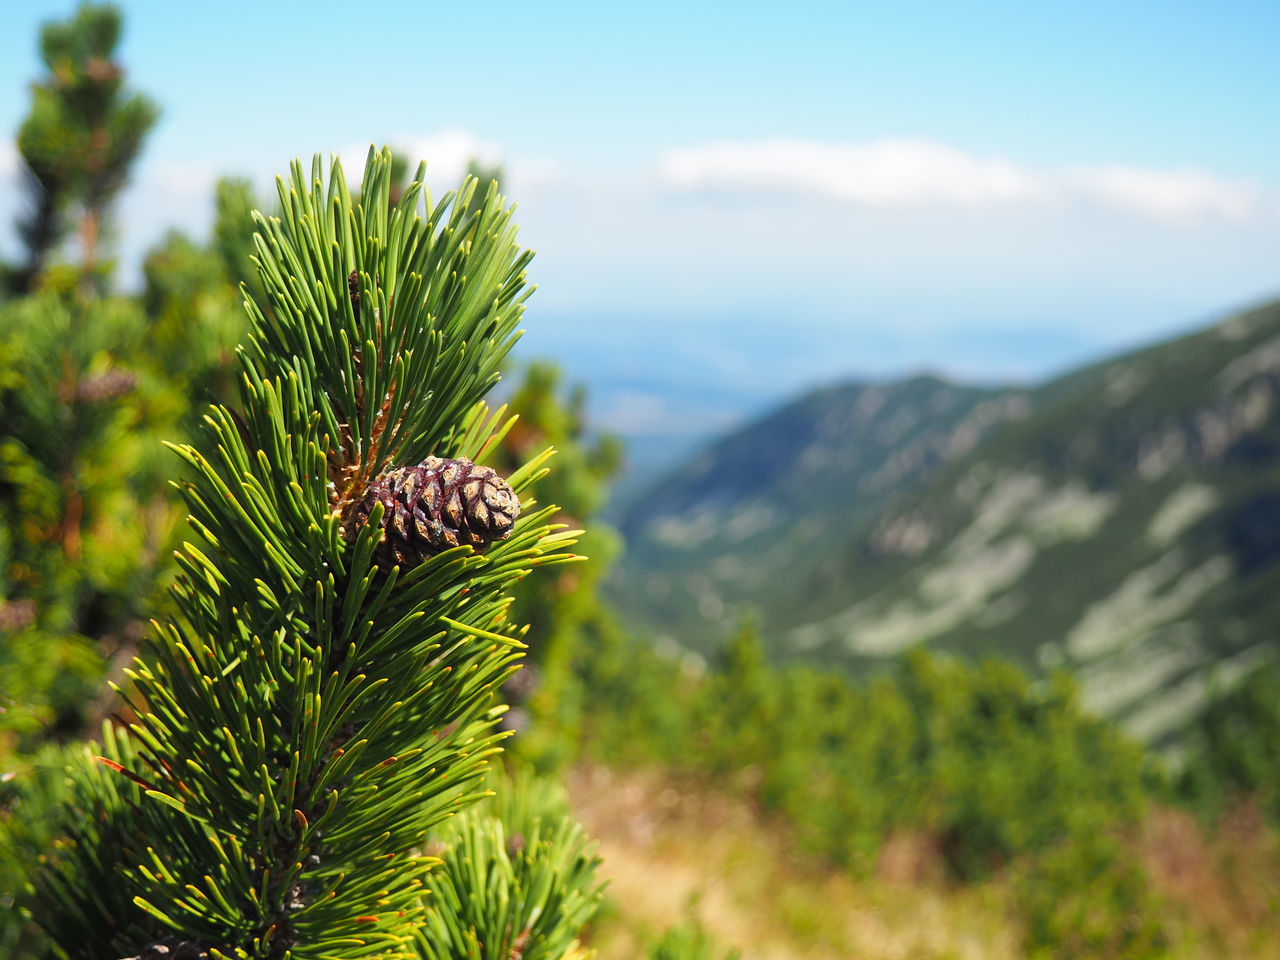 Rila Mountain, Bulgaria Beauty In Nature Bulgaria Bulgarian Nature Close-up Day Focus On Foreground Green Green Color Growth Hiking Mountain Nature No People Outdoors Pine Pine Tree Plant Rila Mountain Scenics Sky Summer Summer Views Tranquility